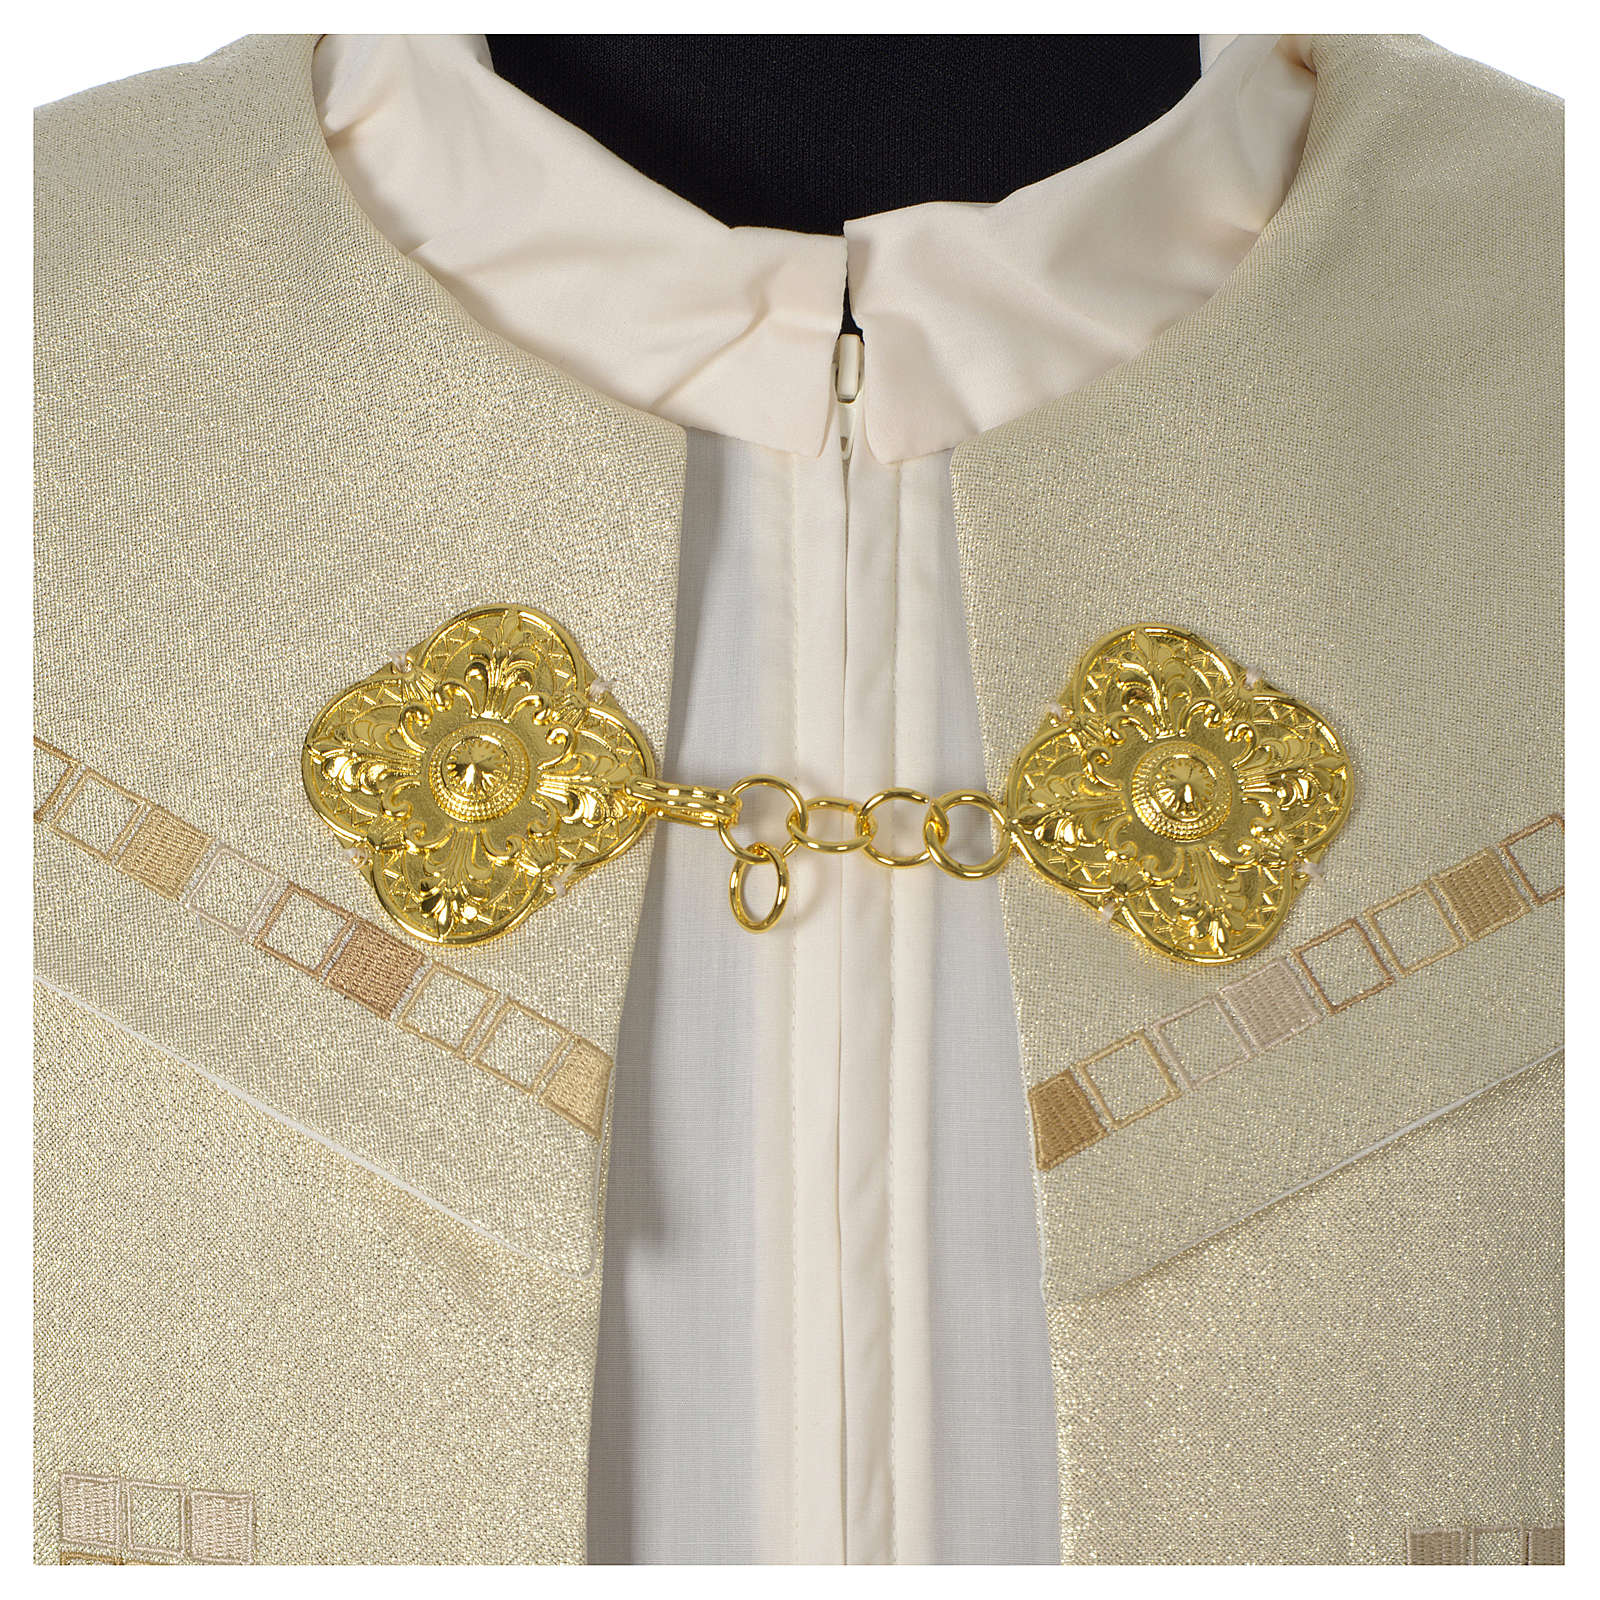 Cope with golden Cross decoration, ivory 4